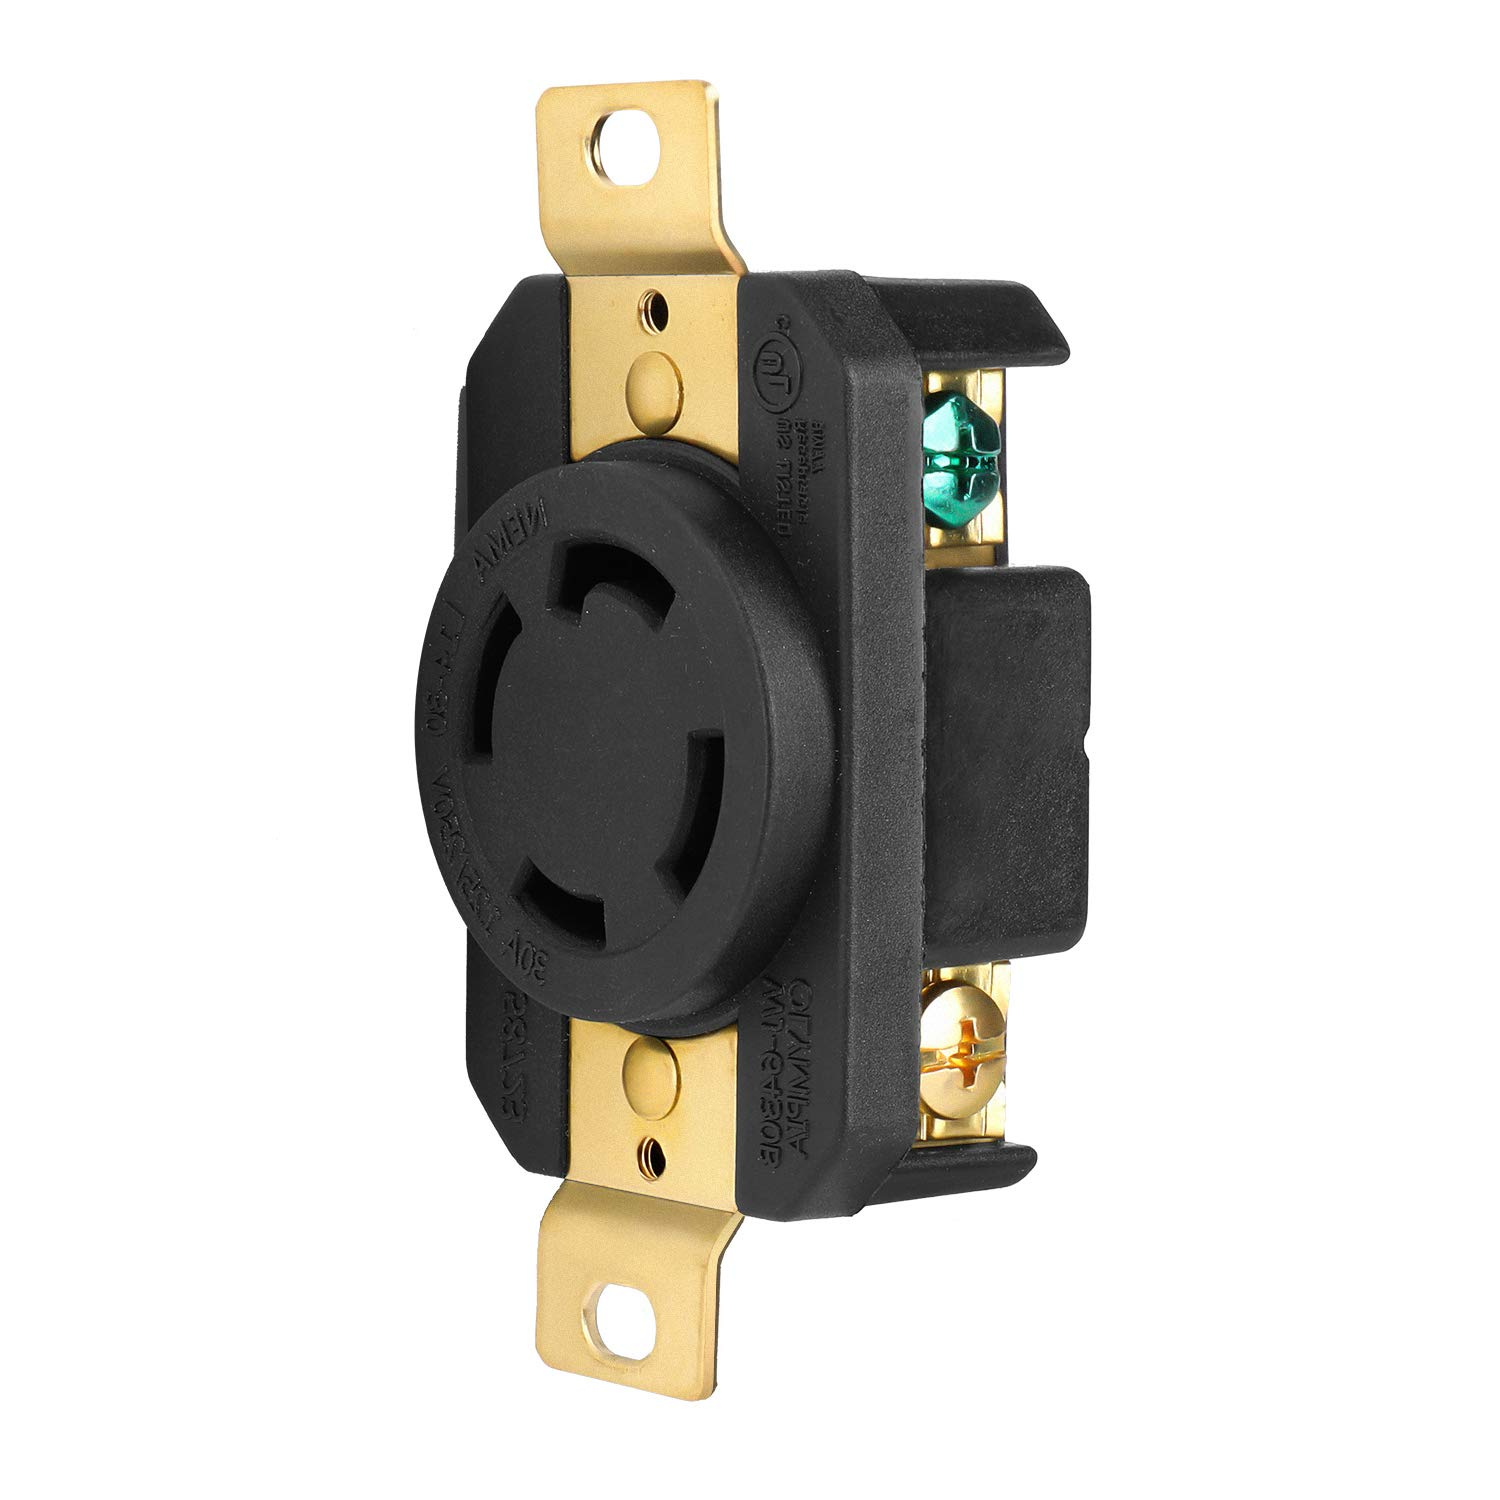 TNP L14-30R Twist Lock Receptacle 125/250V 30A UL Listed Flush Mounting Connector Socket, Industrial Grade V-0 Flammability 3 Pole 4 Wire Grounding